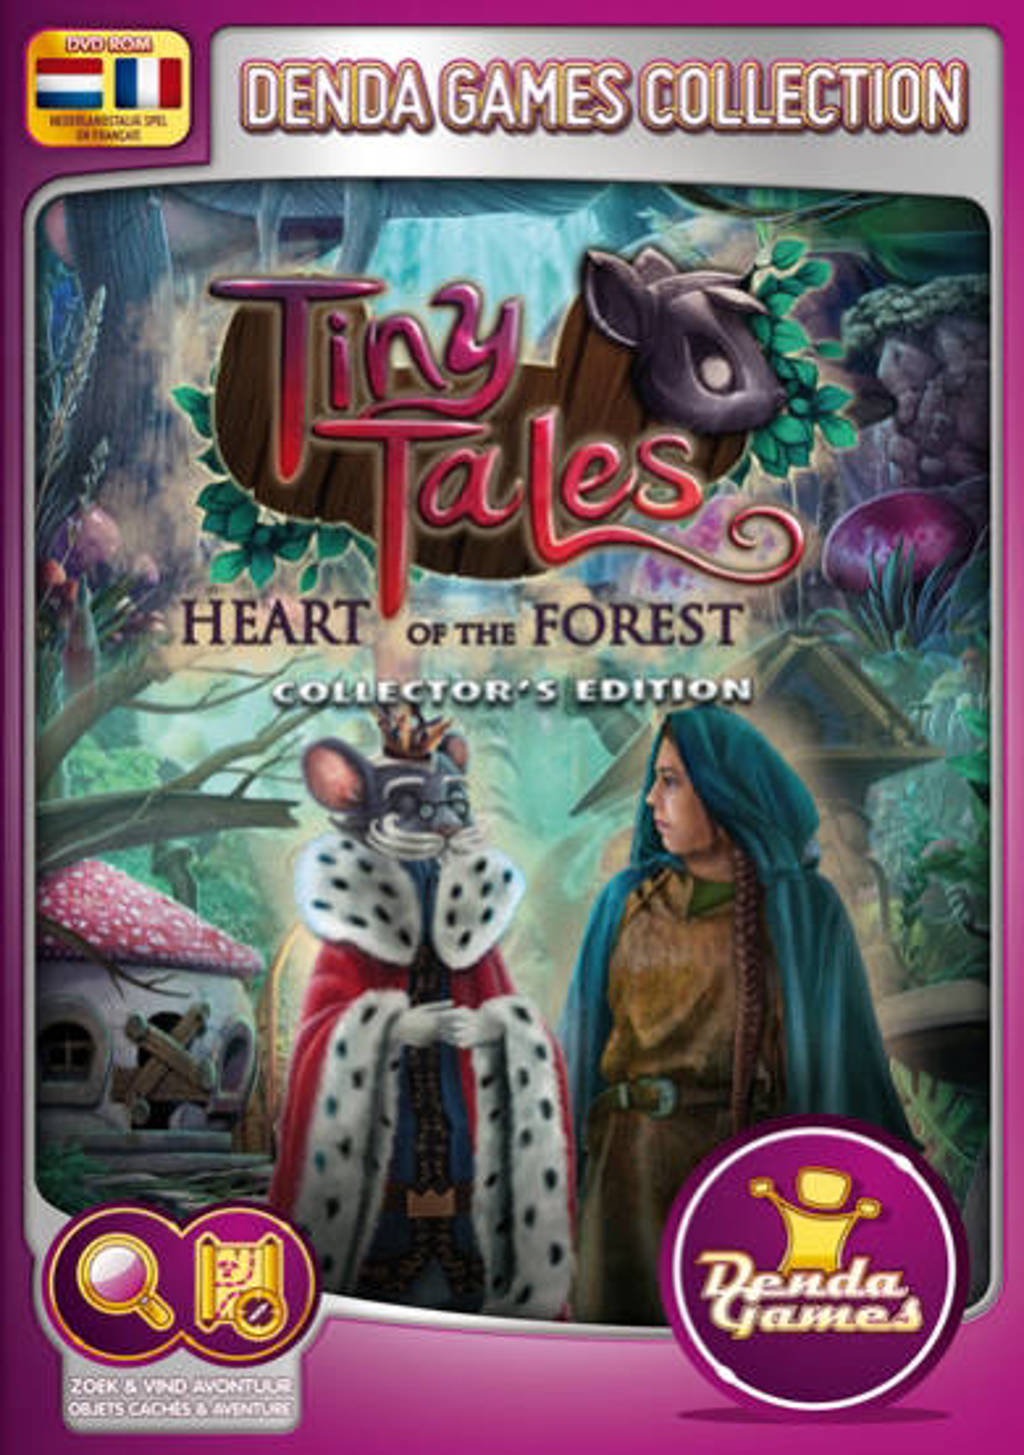 Tiny tales - Heart of the forest (Collectors edition)  (PC)